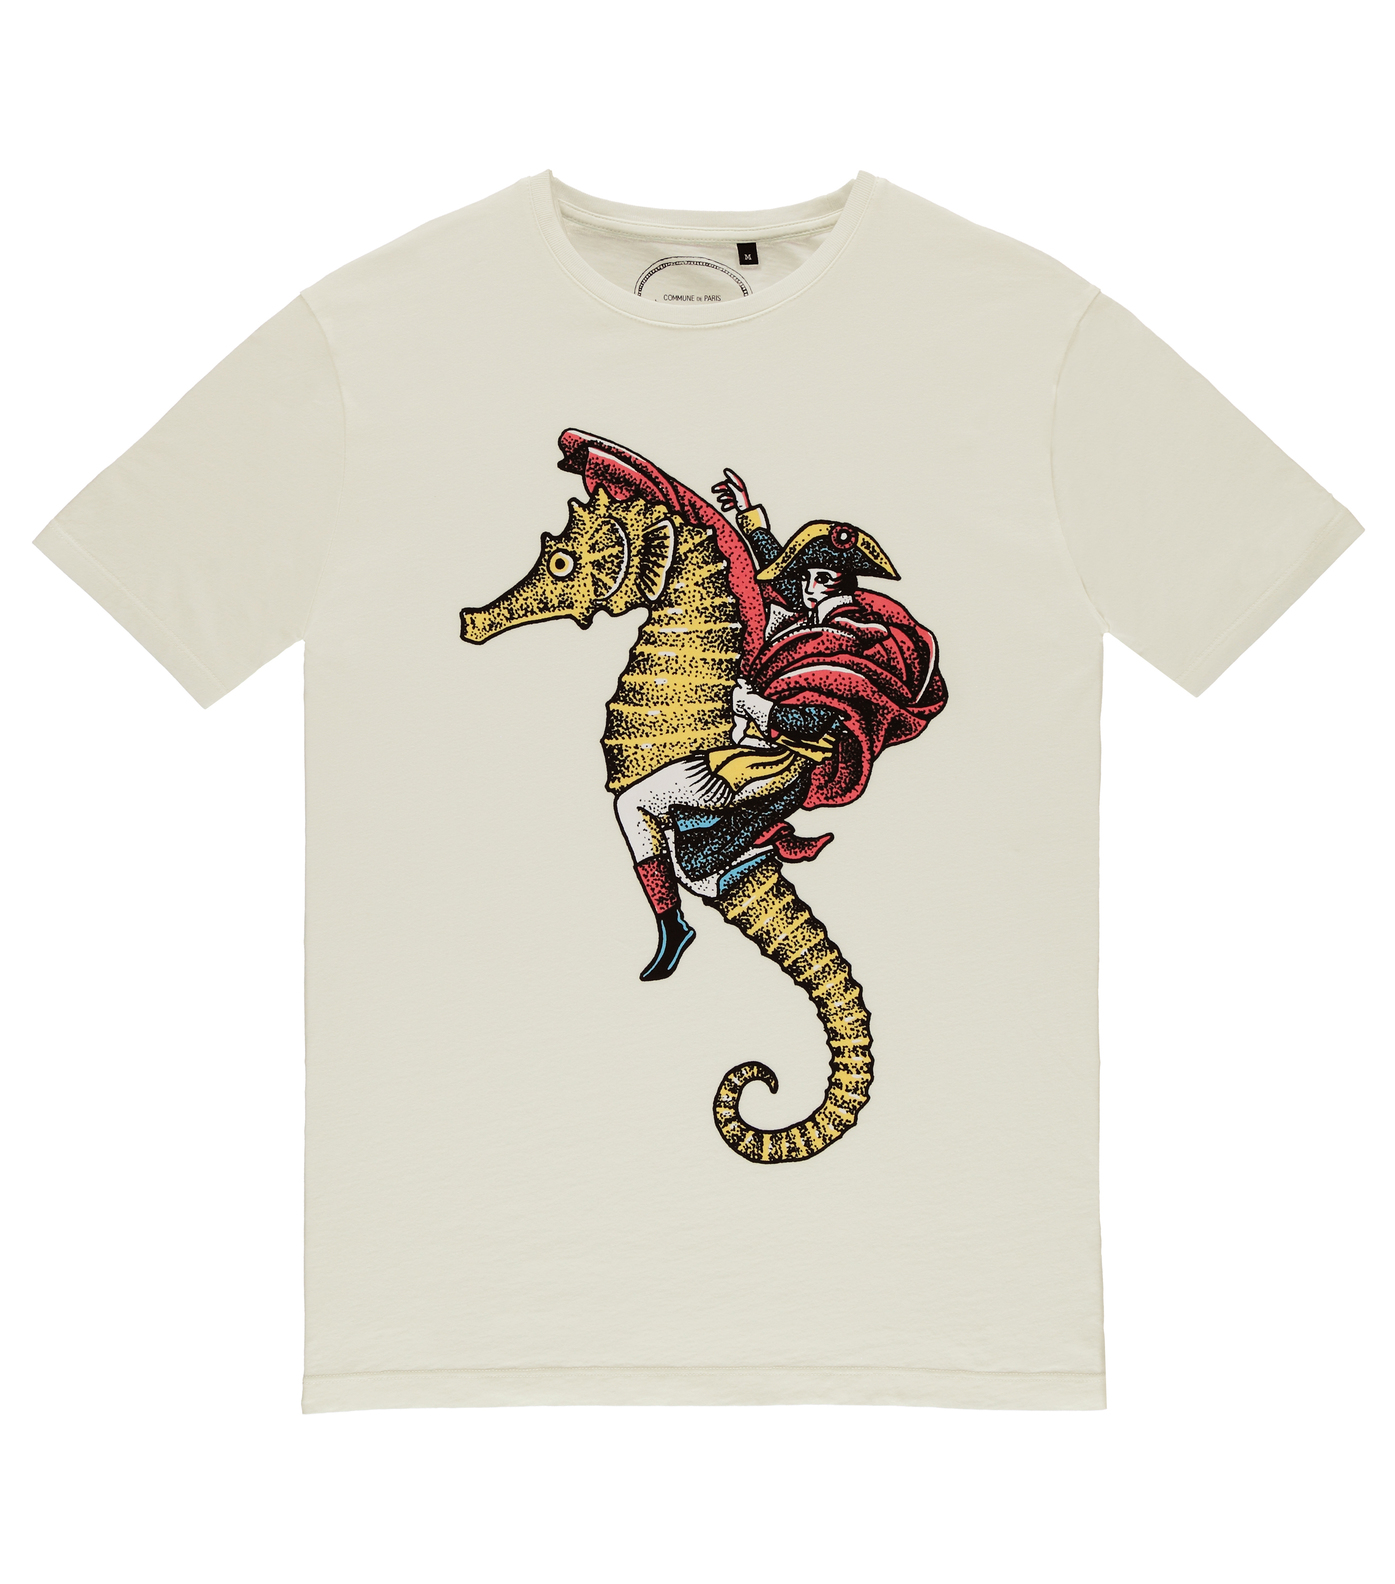 Tee Hippocampe - Offwhite